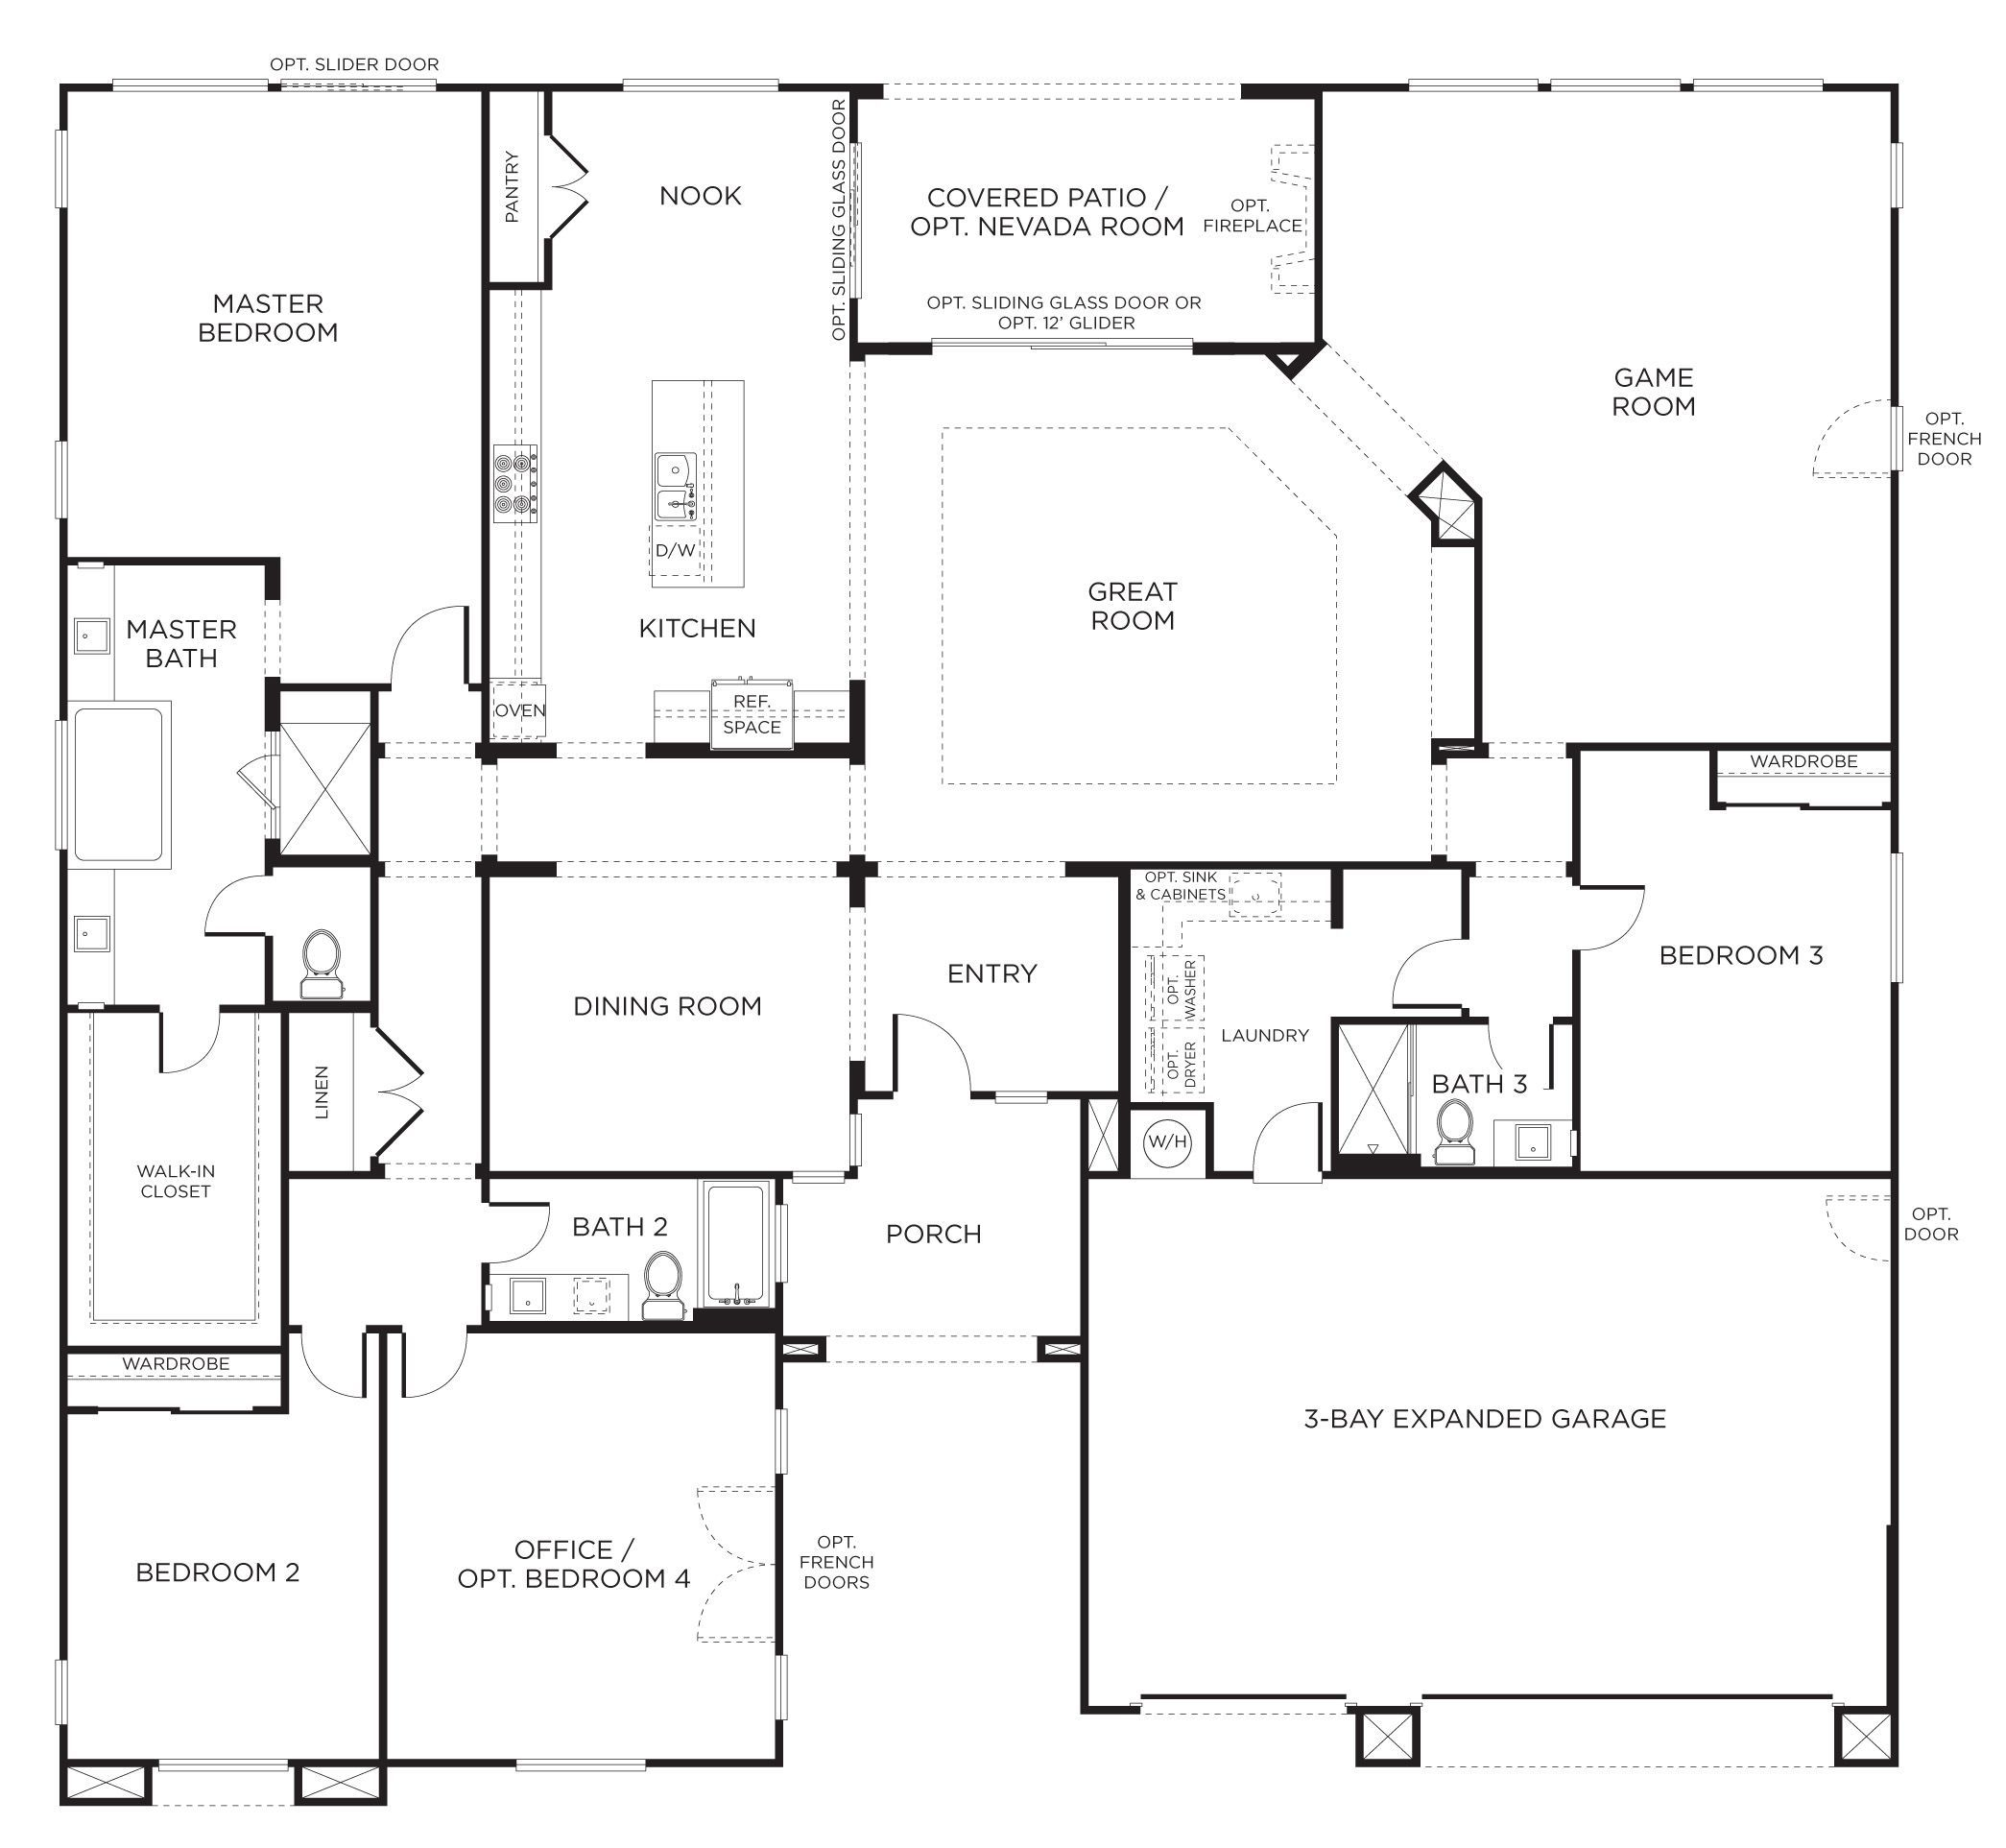 House Plans 4 Bedroom 3 Bath 1 Story In 2020 Single Storey House Plans Four Bedroom House Plans House Plans One Story